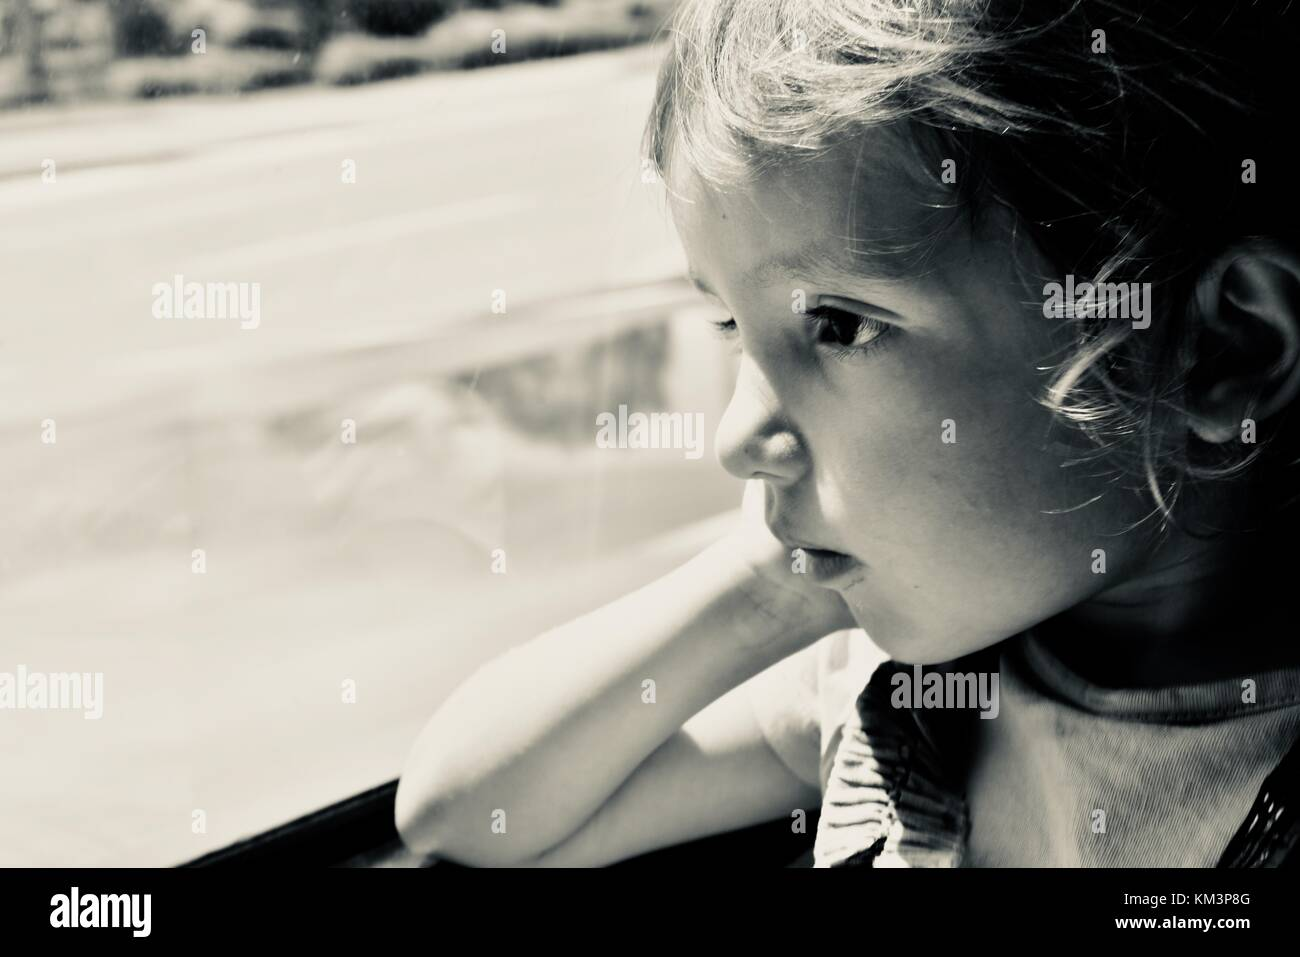 Young girl sitting on a bus looking out the window thinking, Townsville, Queensland, Australia - Stock Image